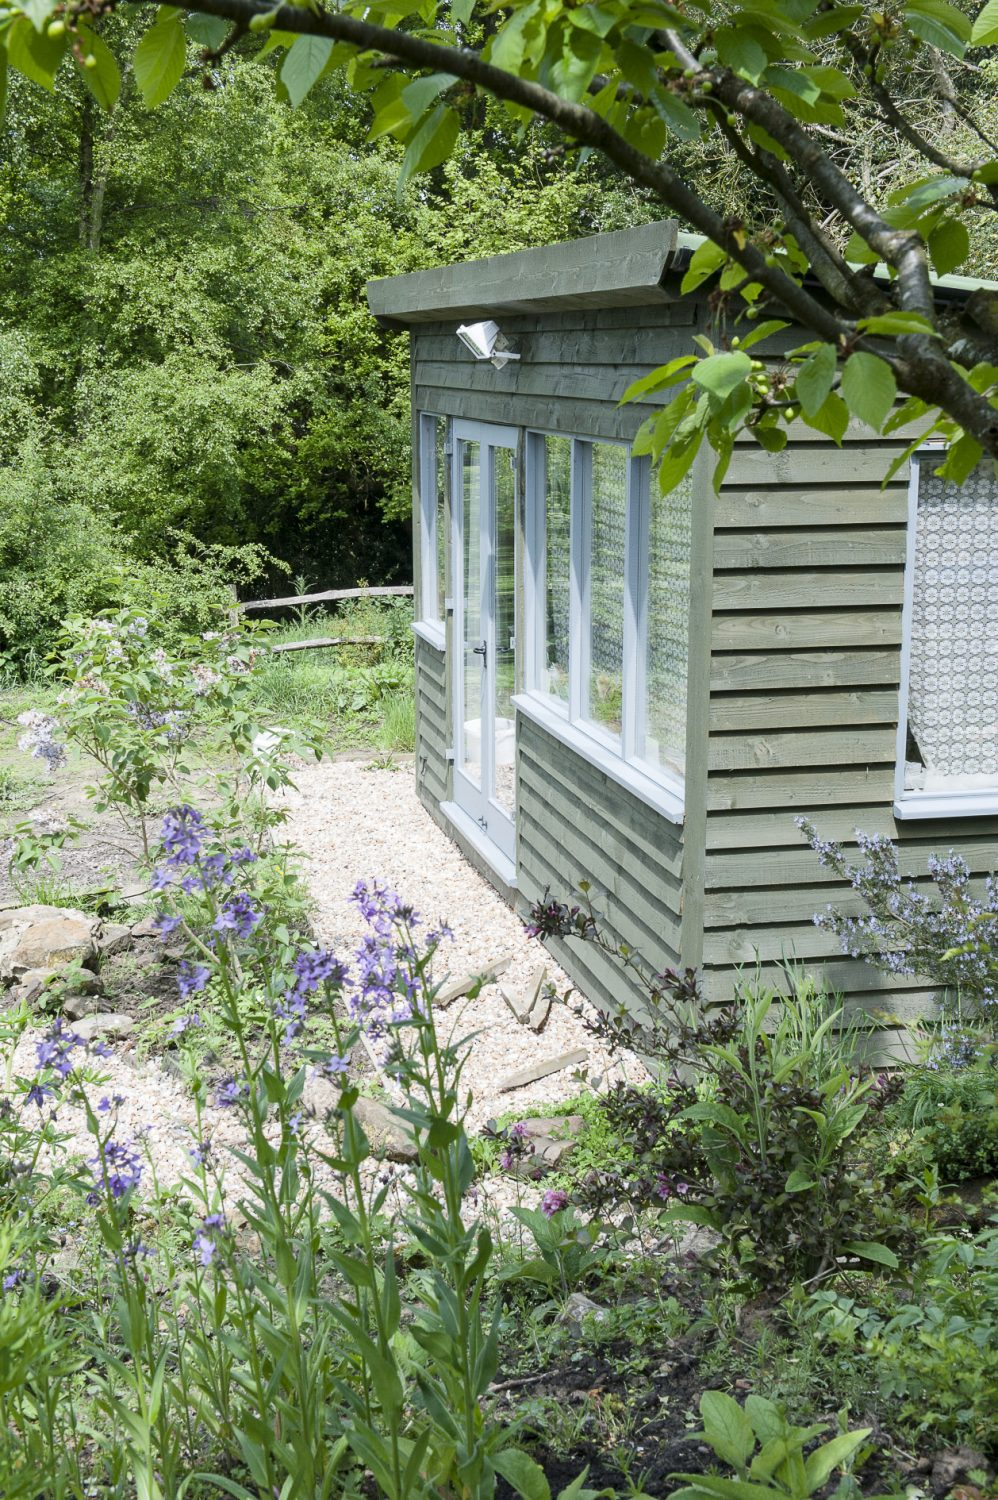 Wendy's studio is nestled amongst abundantly lush borders that have been planted in a tightly packed, but marvellously loose style